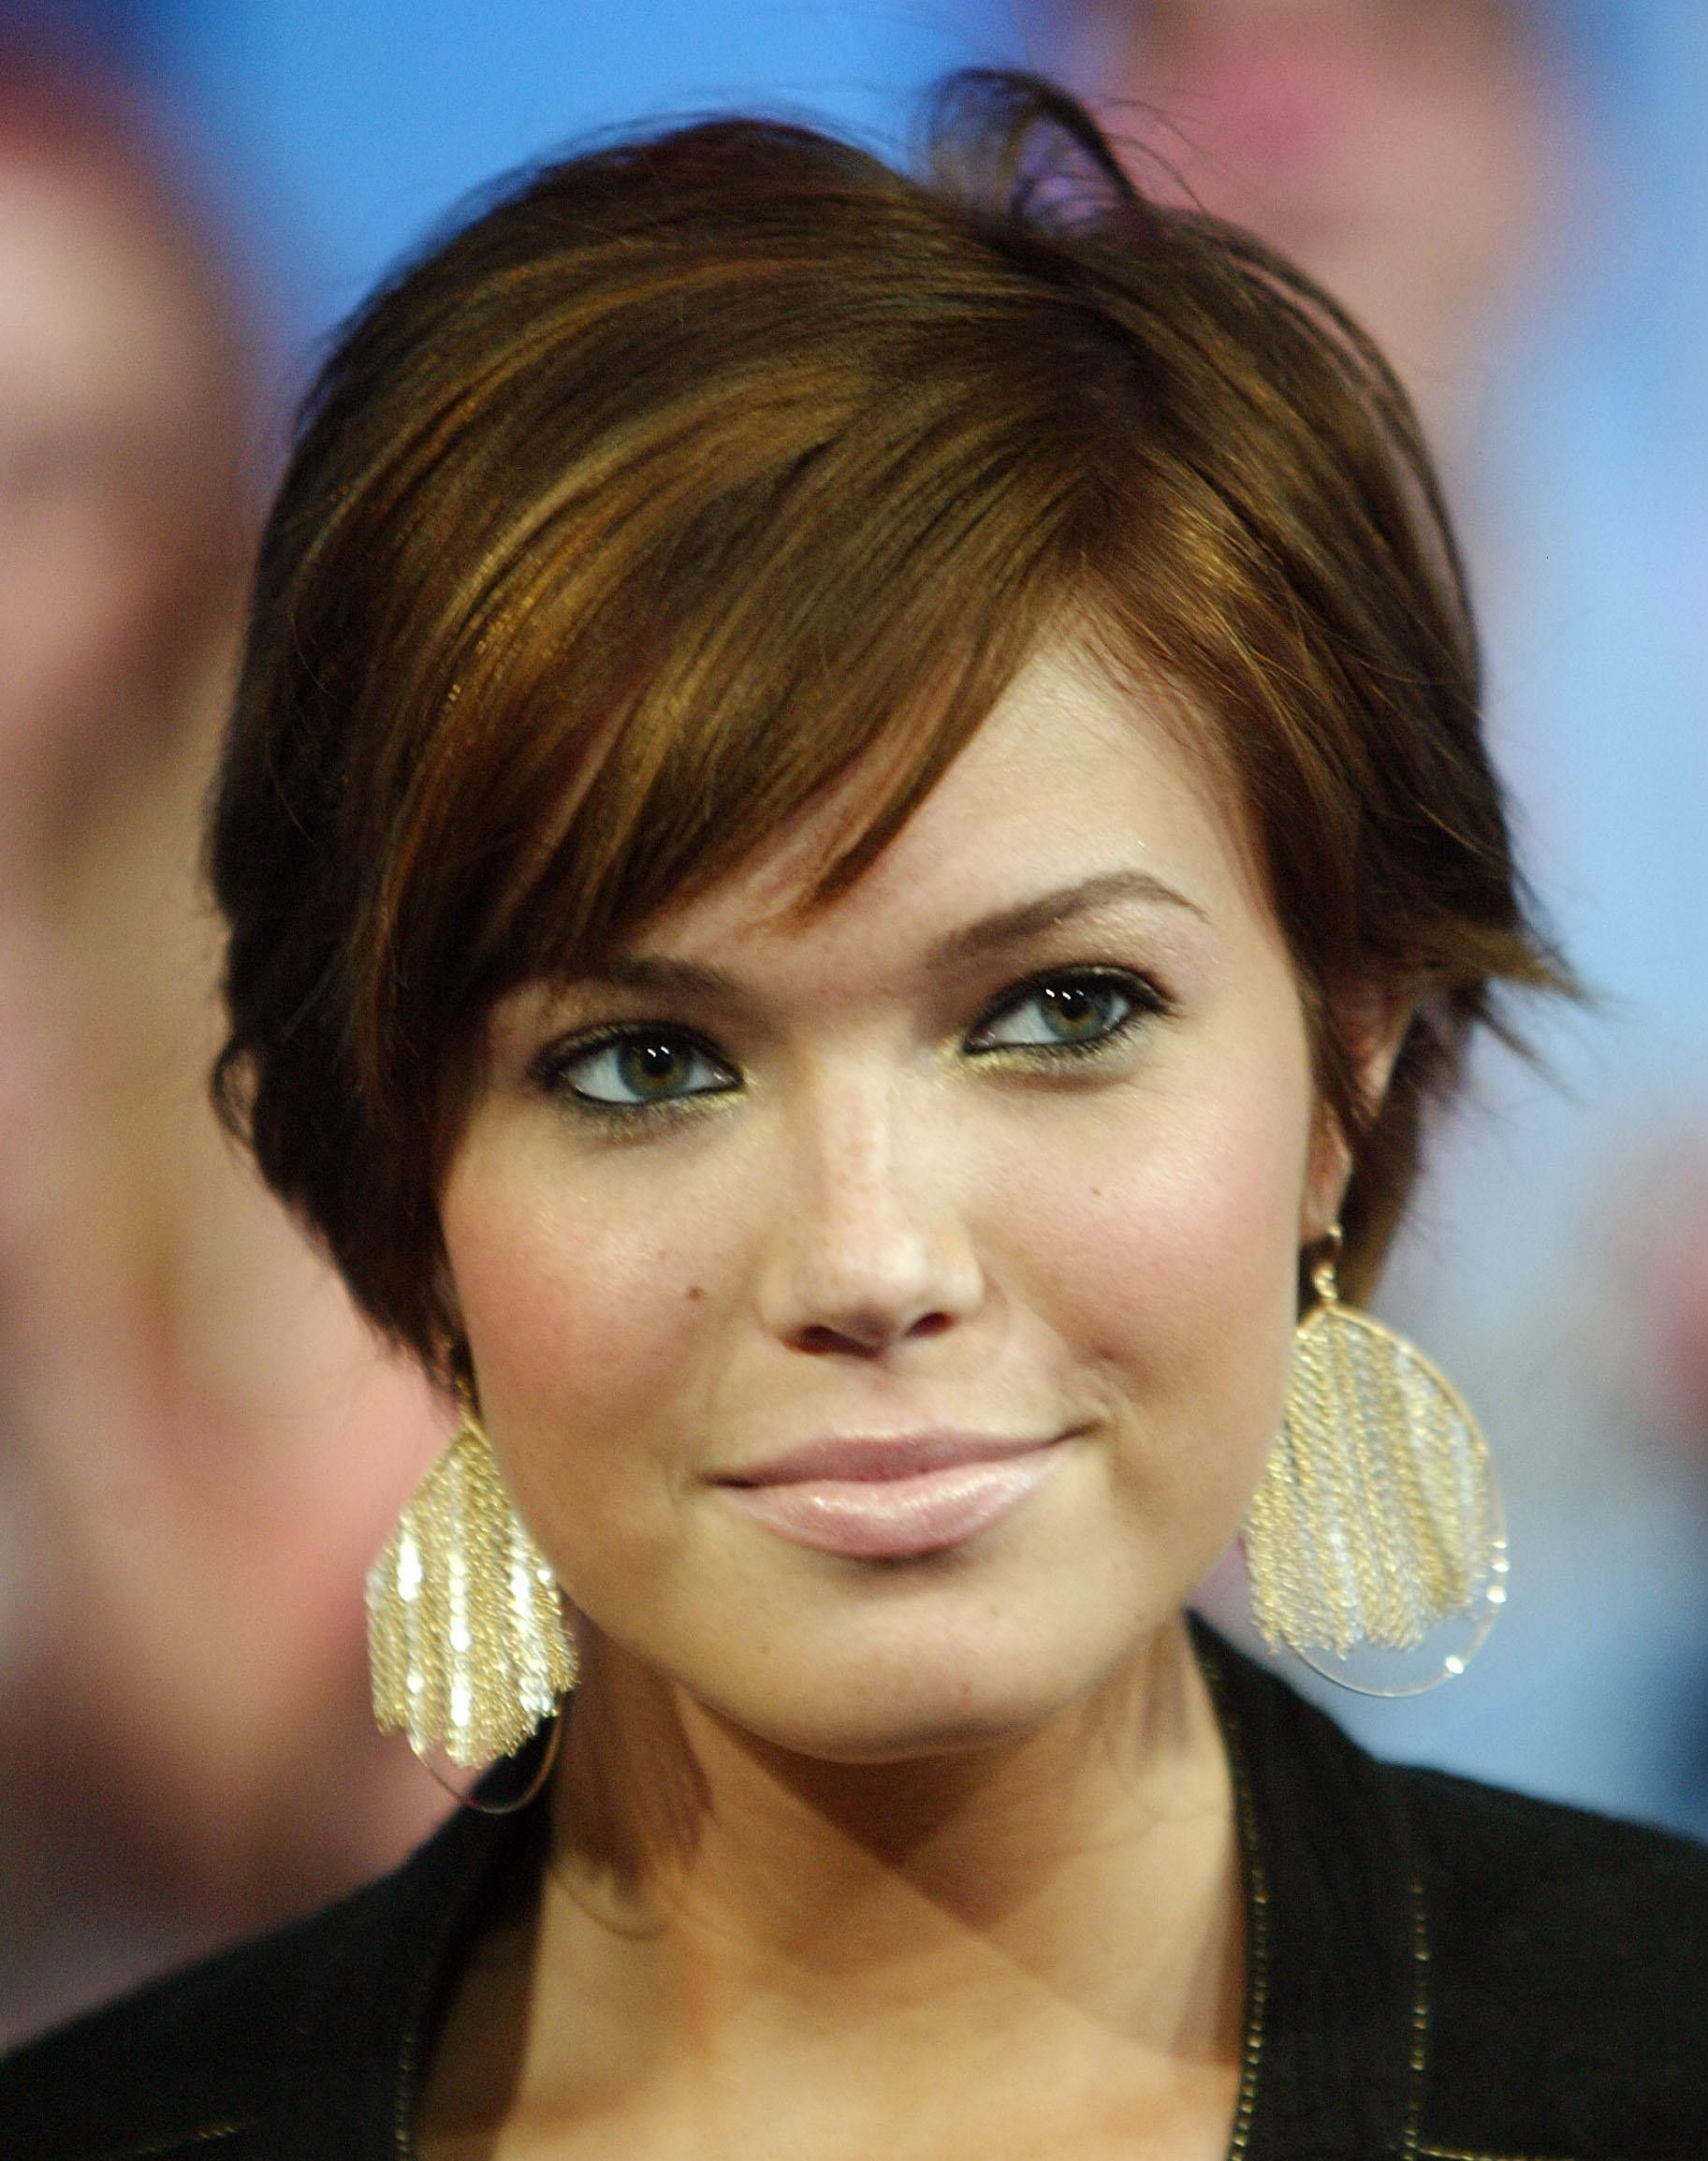 Now This Cut Might Just Be What I Want Not Too Short Really Just